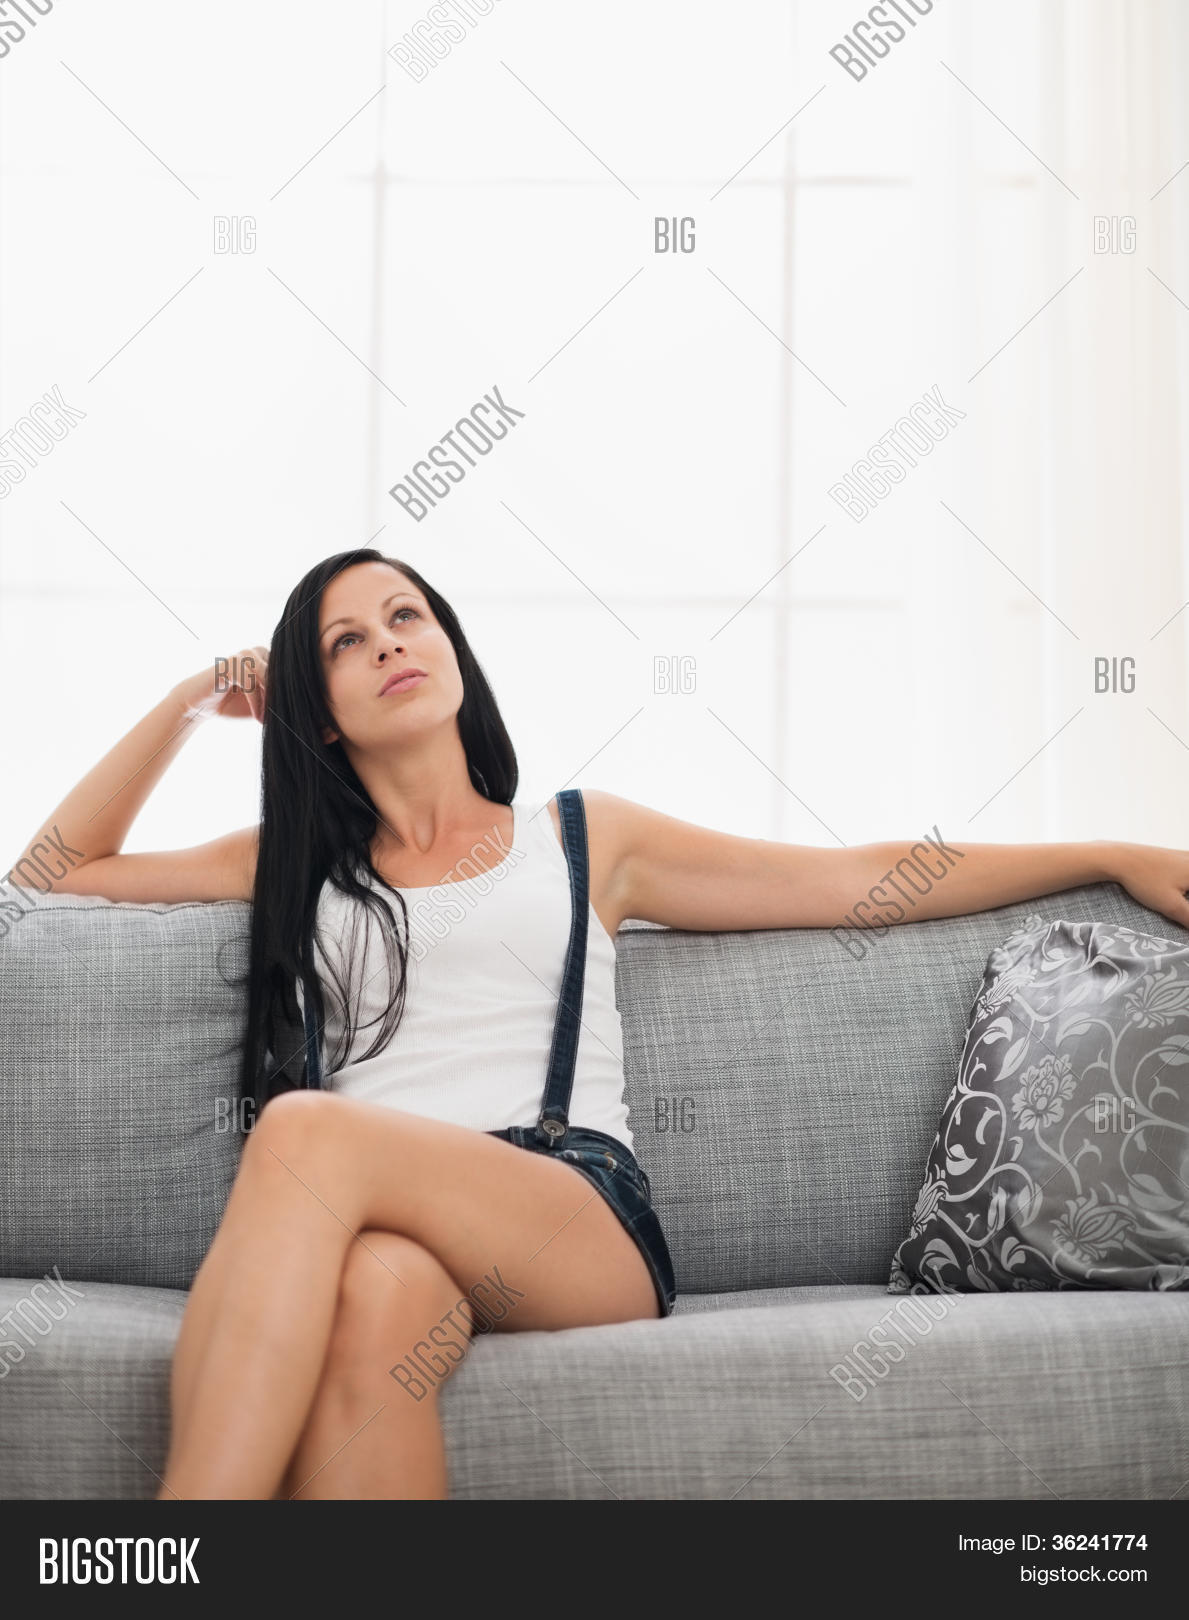 thoughtful girl sitting on couch image photo bigstock. Black Bedroom Furniture Sets. Home Design Ideas